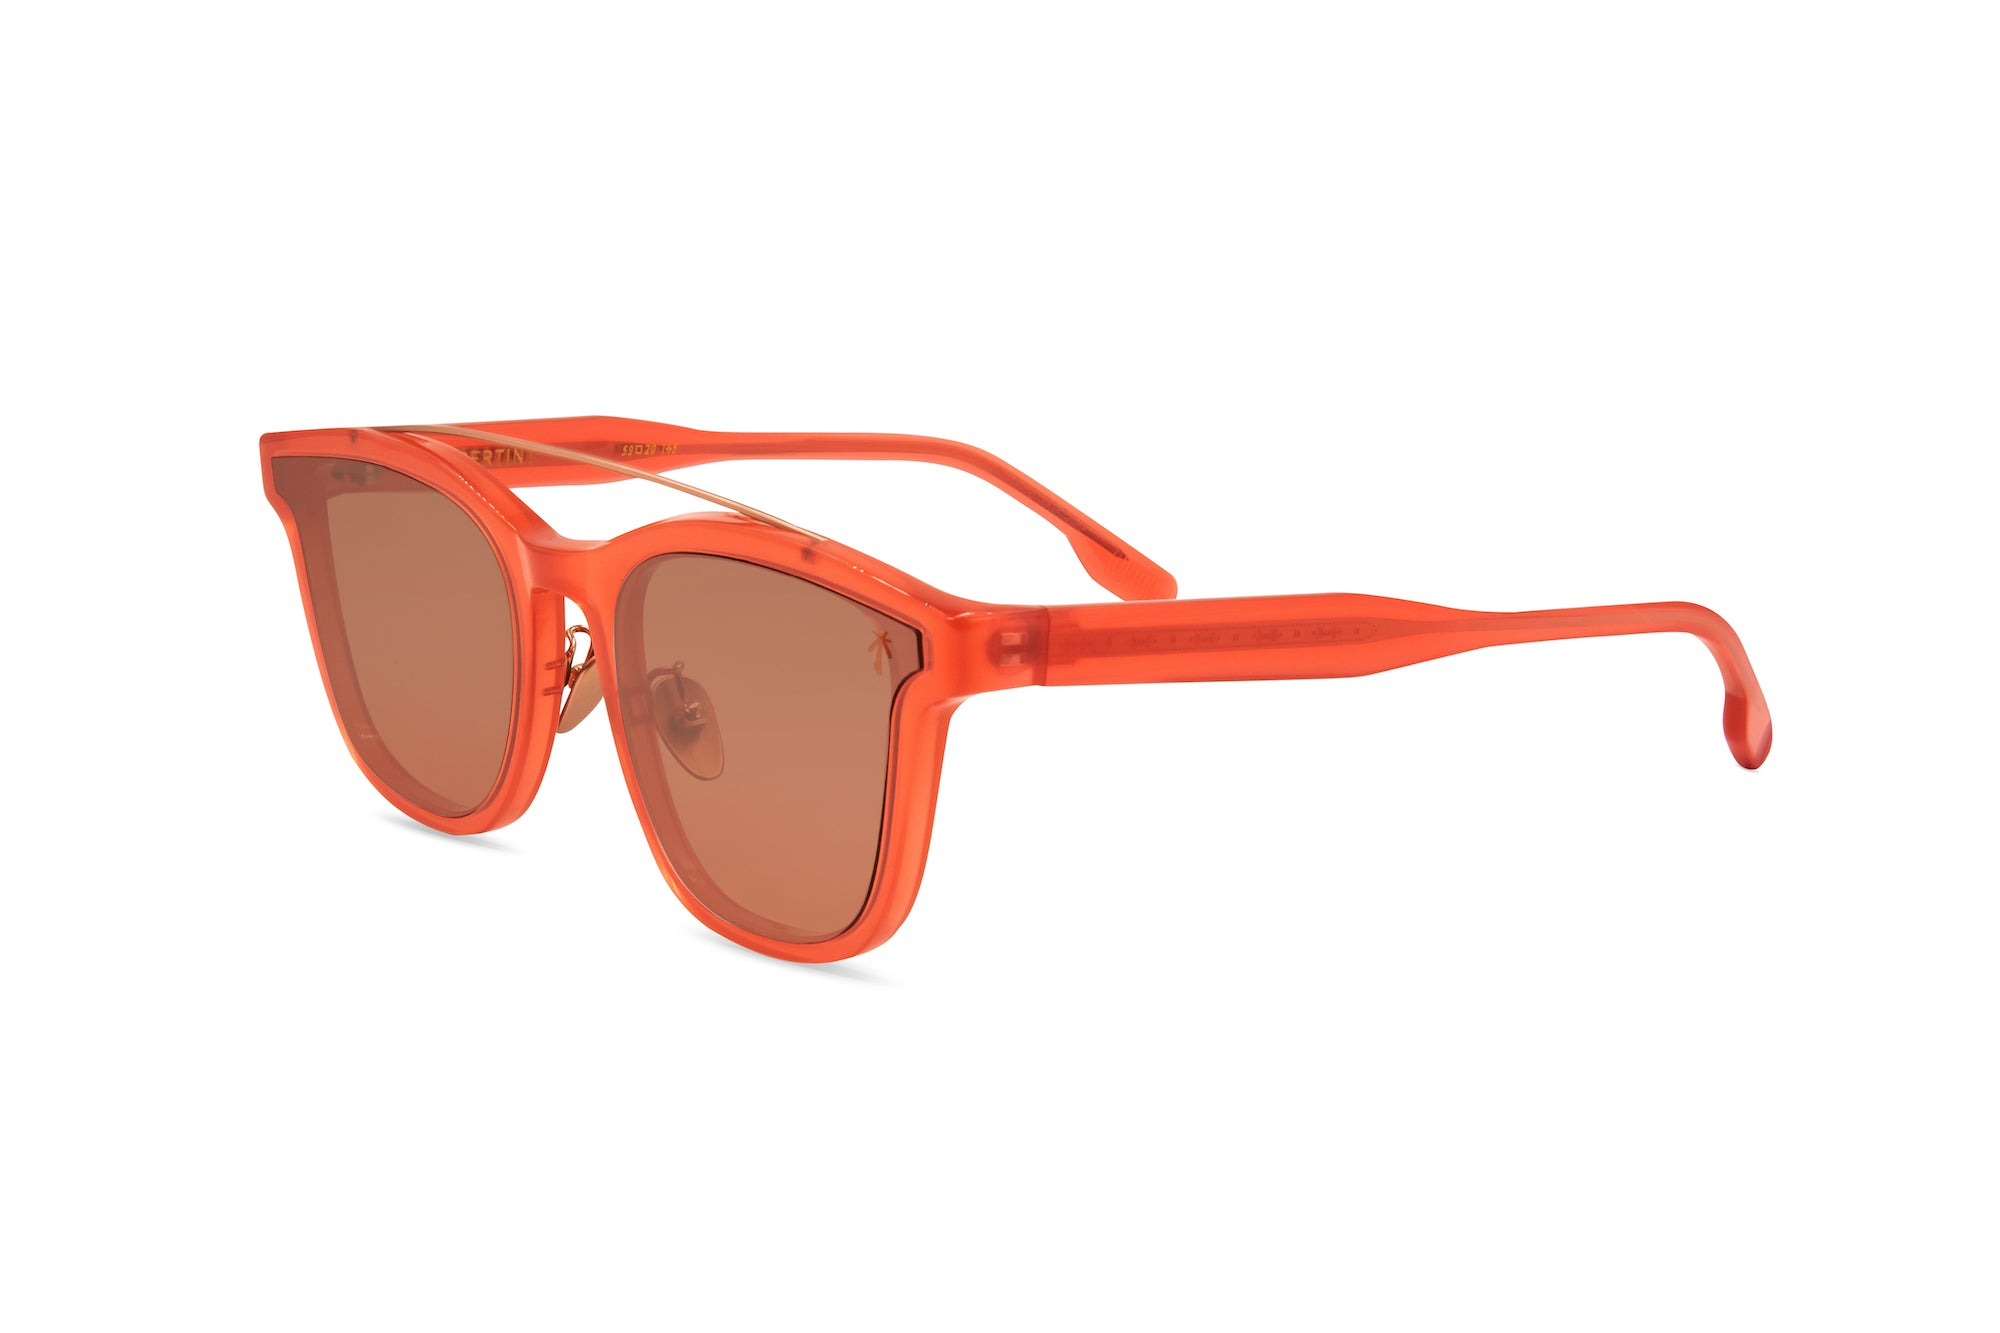 Venice Beach in Pinkish Red - Peppertint - Designer sunglasses